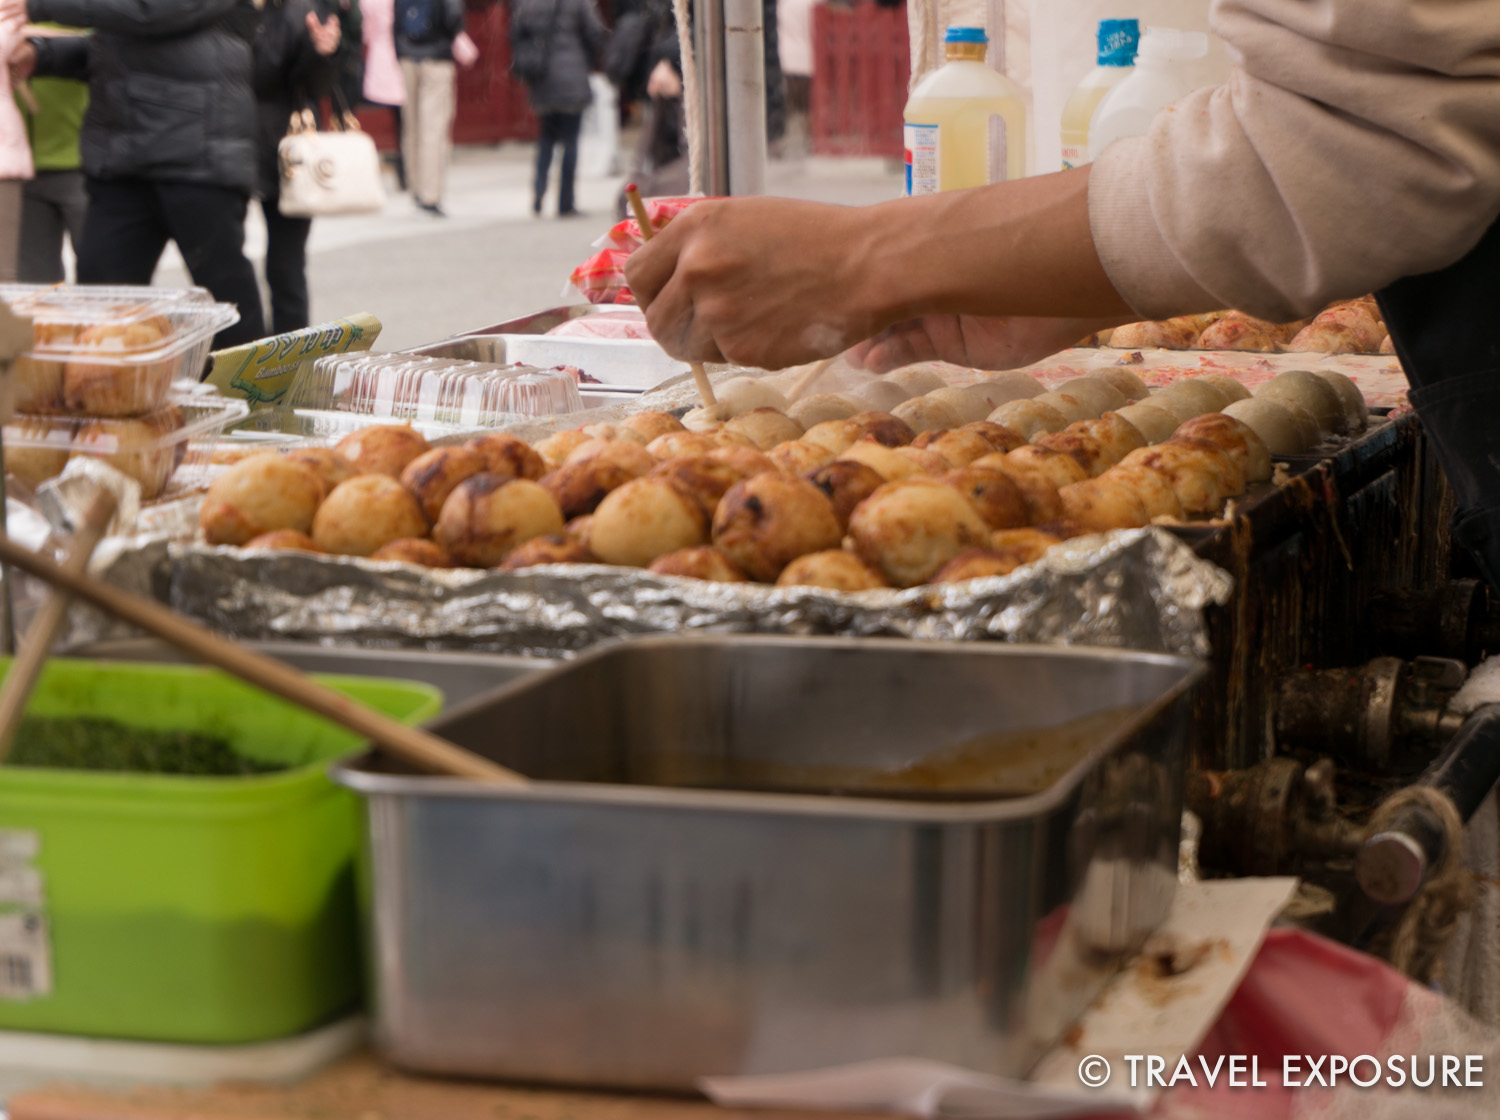 It was cool to watch the skill and dexterity of theTakoyaki cooks. They quickly flipped the battered balls over, or off to the side when done, using only chopsticks.